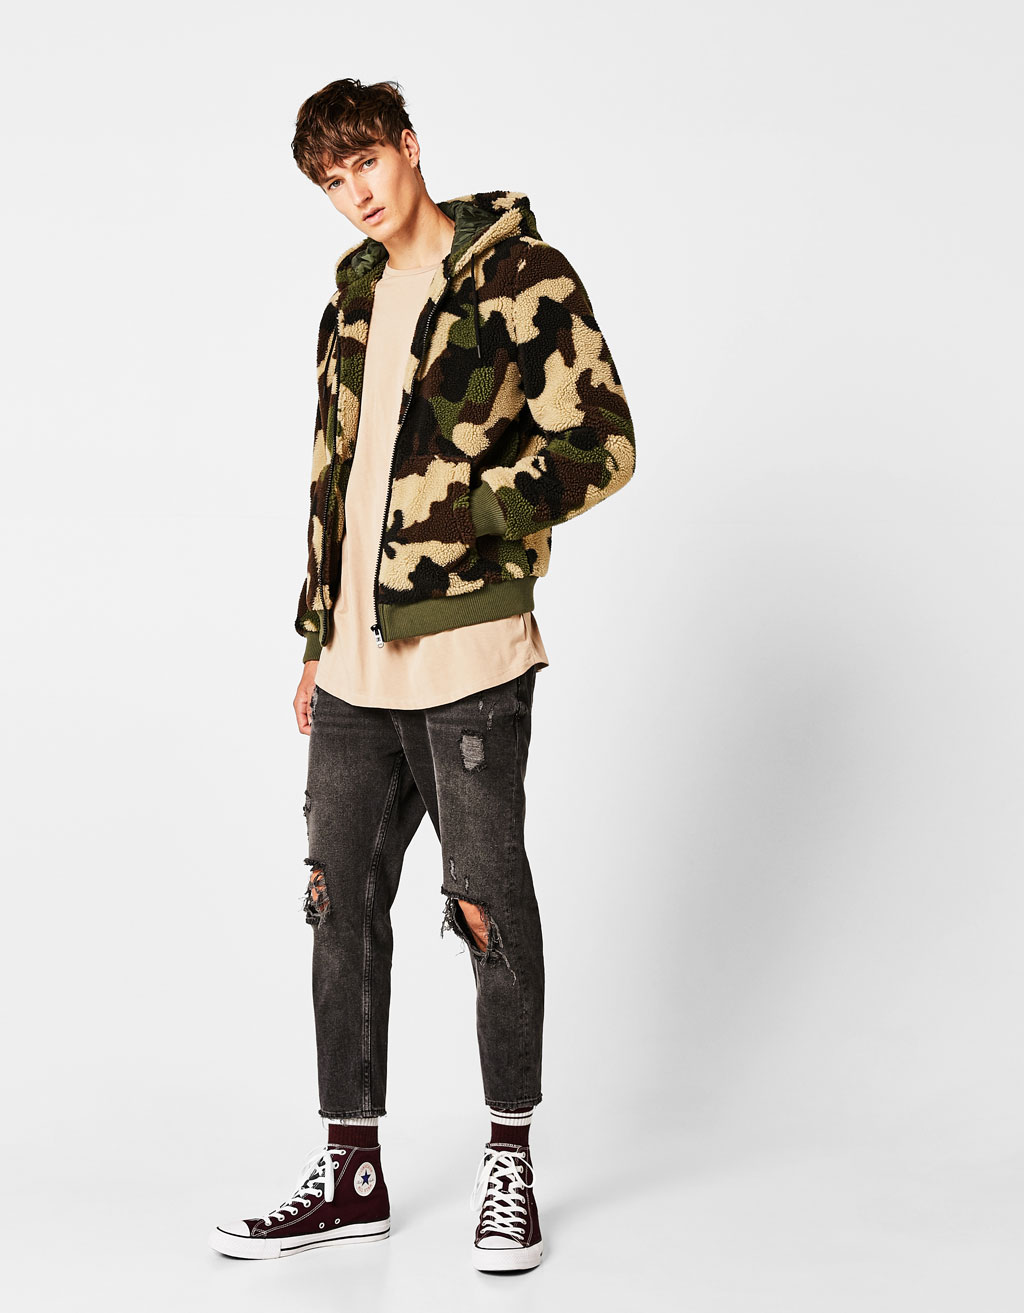 Faux shearling camouflage jacket